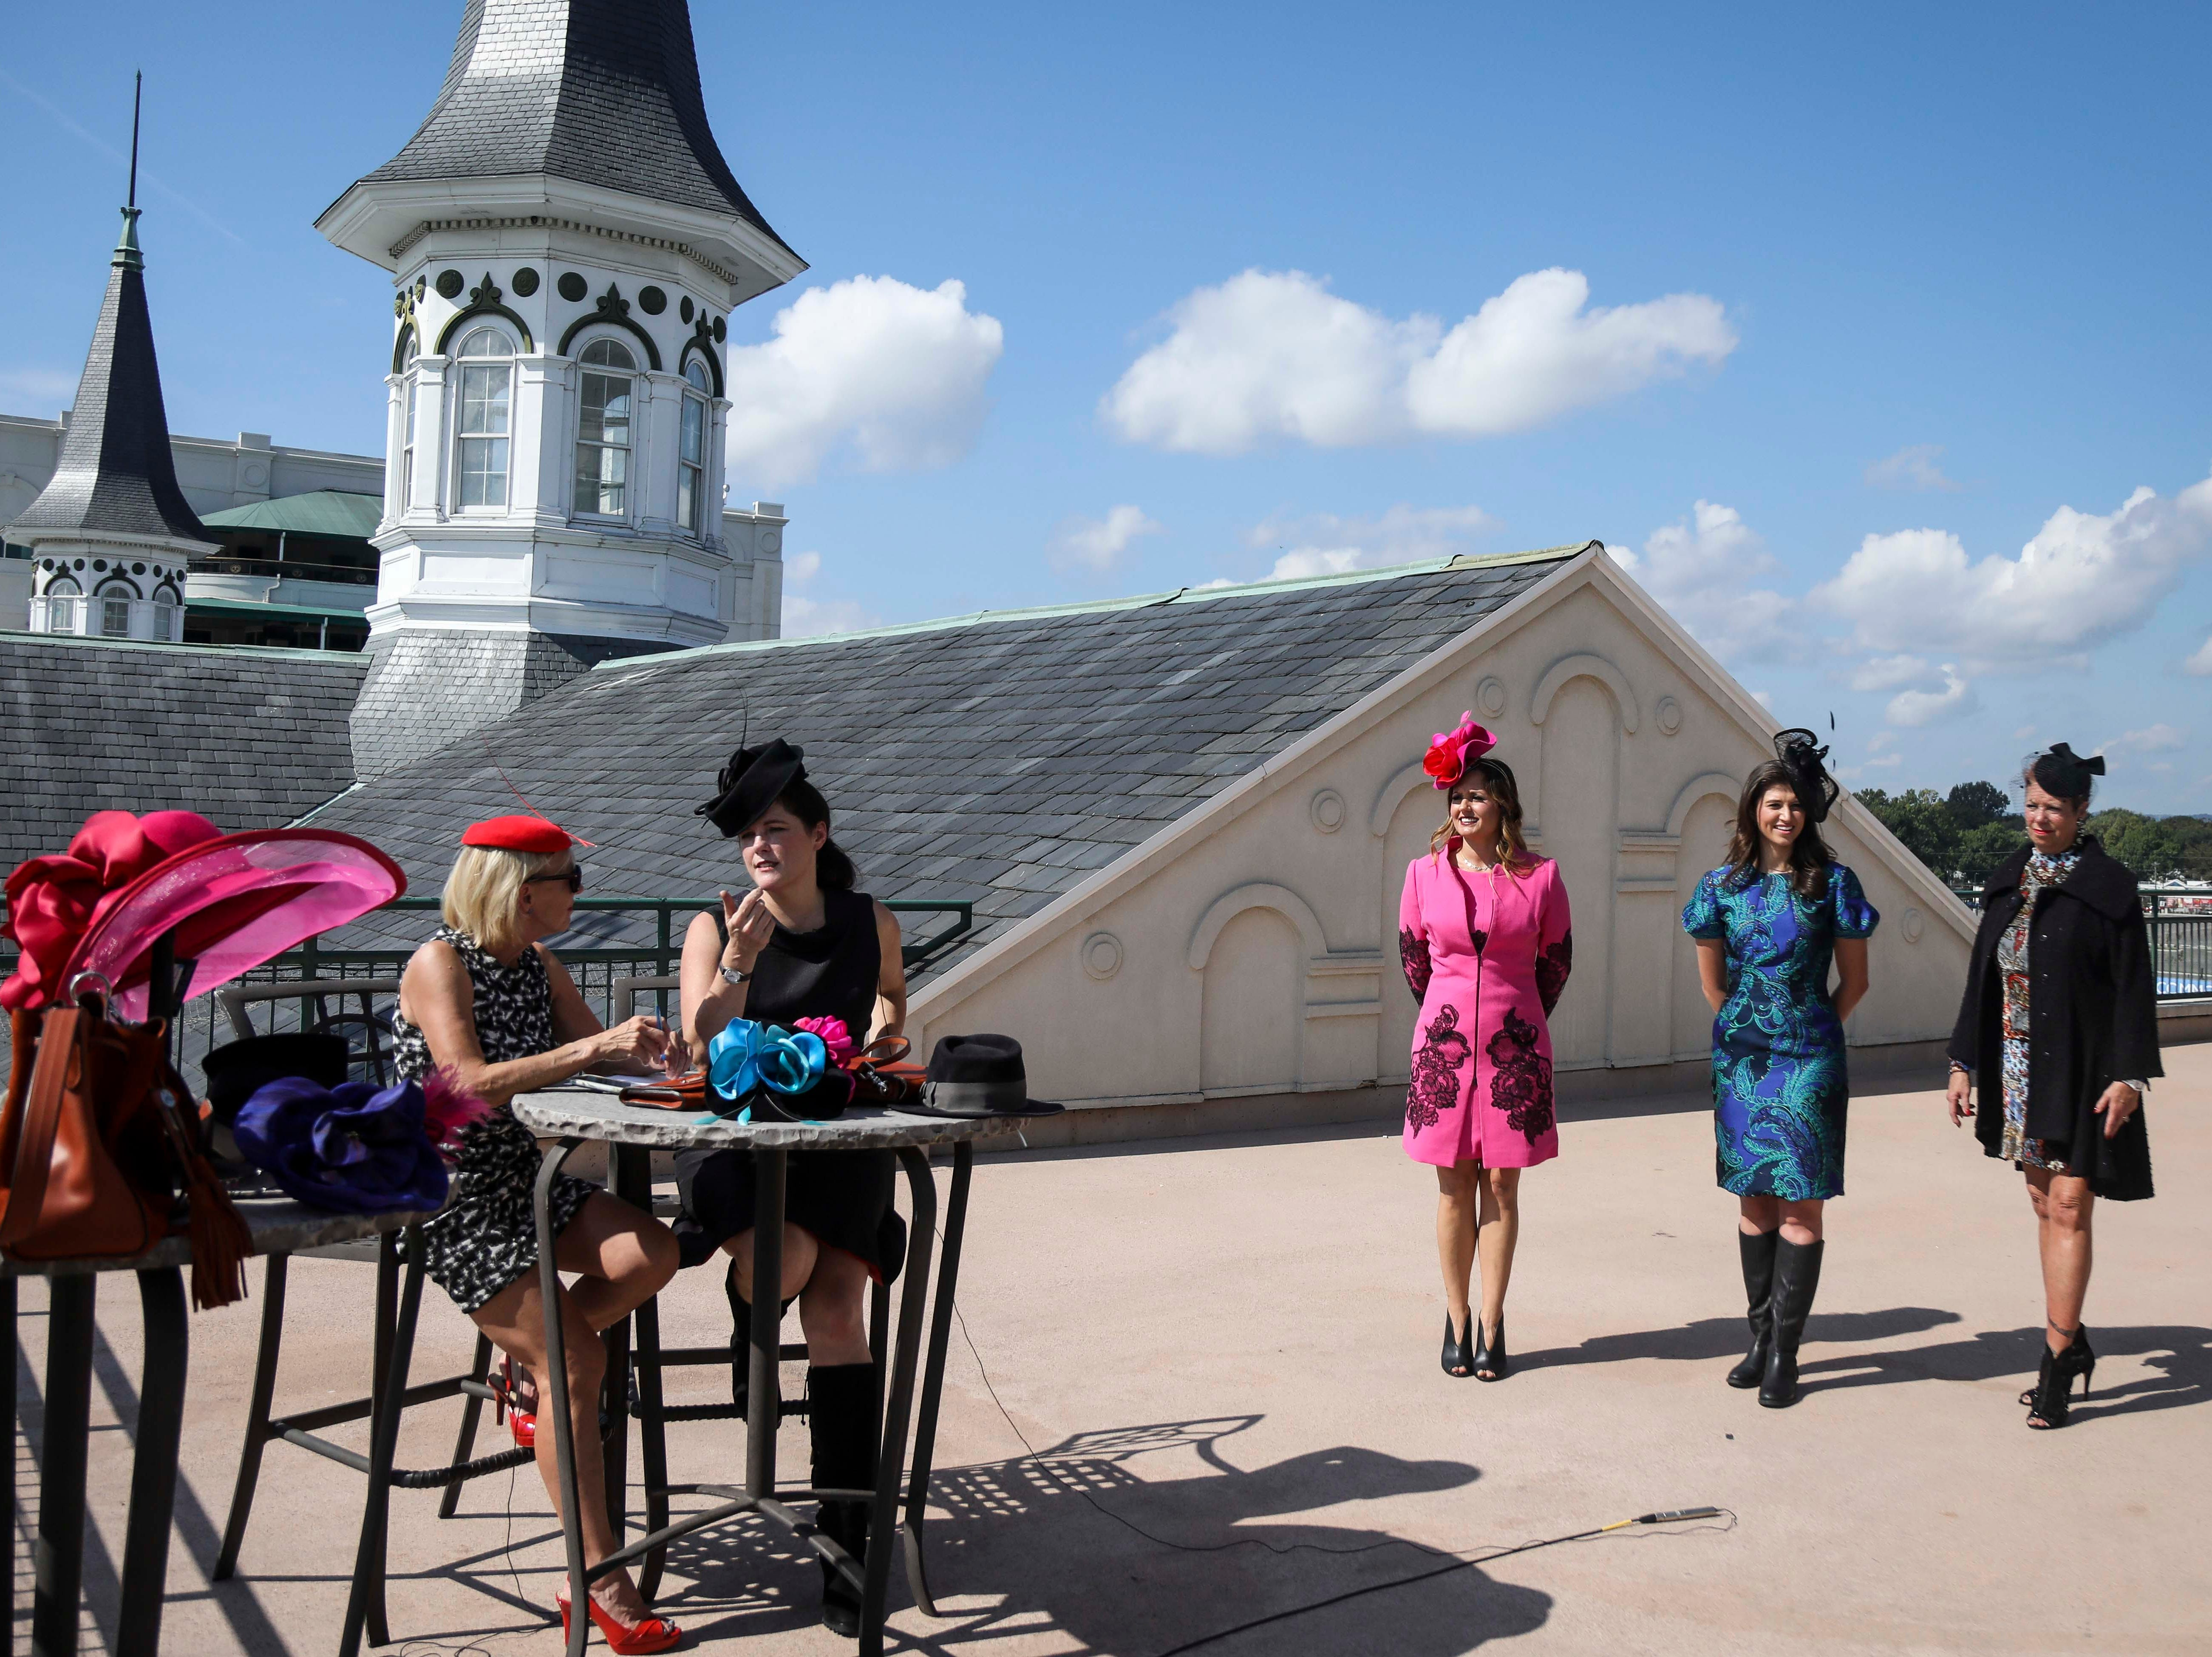 Kirby Adams, left, and Christine Moore, right, track fashion expert and owner of Cam Hats, discuss track fashion during an interview with the Courier Journal ahead of the Breeders Cup (November 3) while (from left to right) Candice Isa, Katie Bouchard and Patty Ethington model dresses from Lourdes Chavez and Moore 's handmade Cam Hats at Churchill Downs on Wednesday, October 3, 2018.